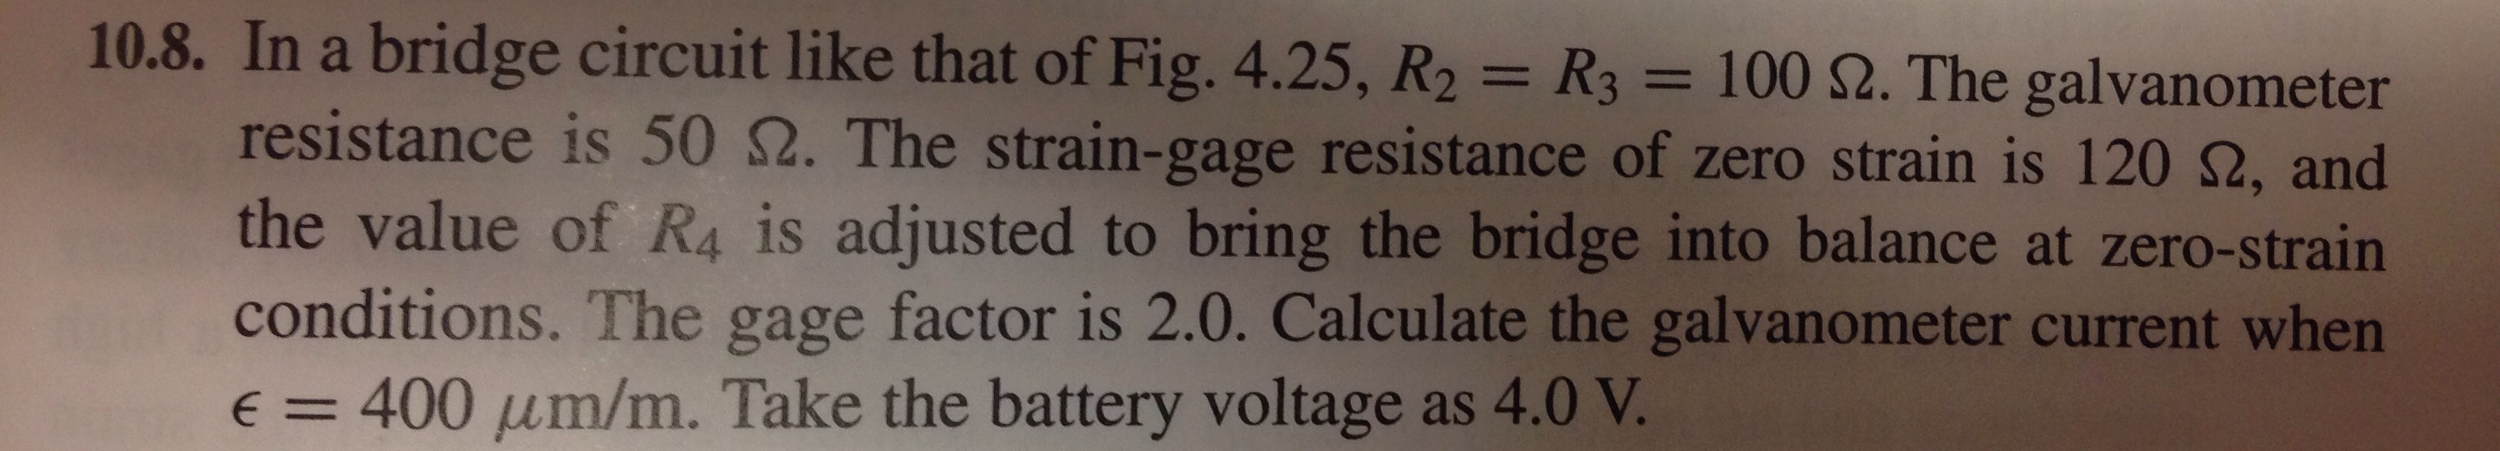 In a bridge circuit like that of Fig. 4.25, R2 = R